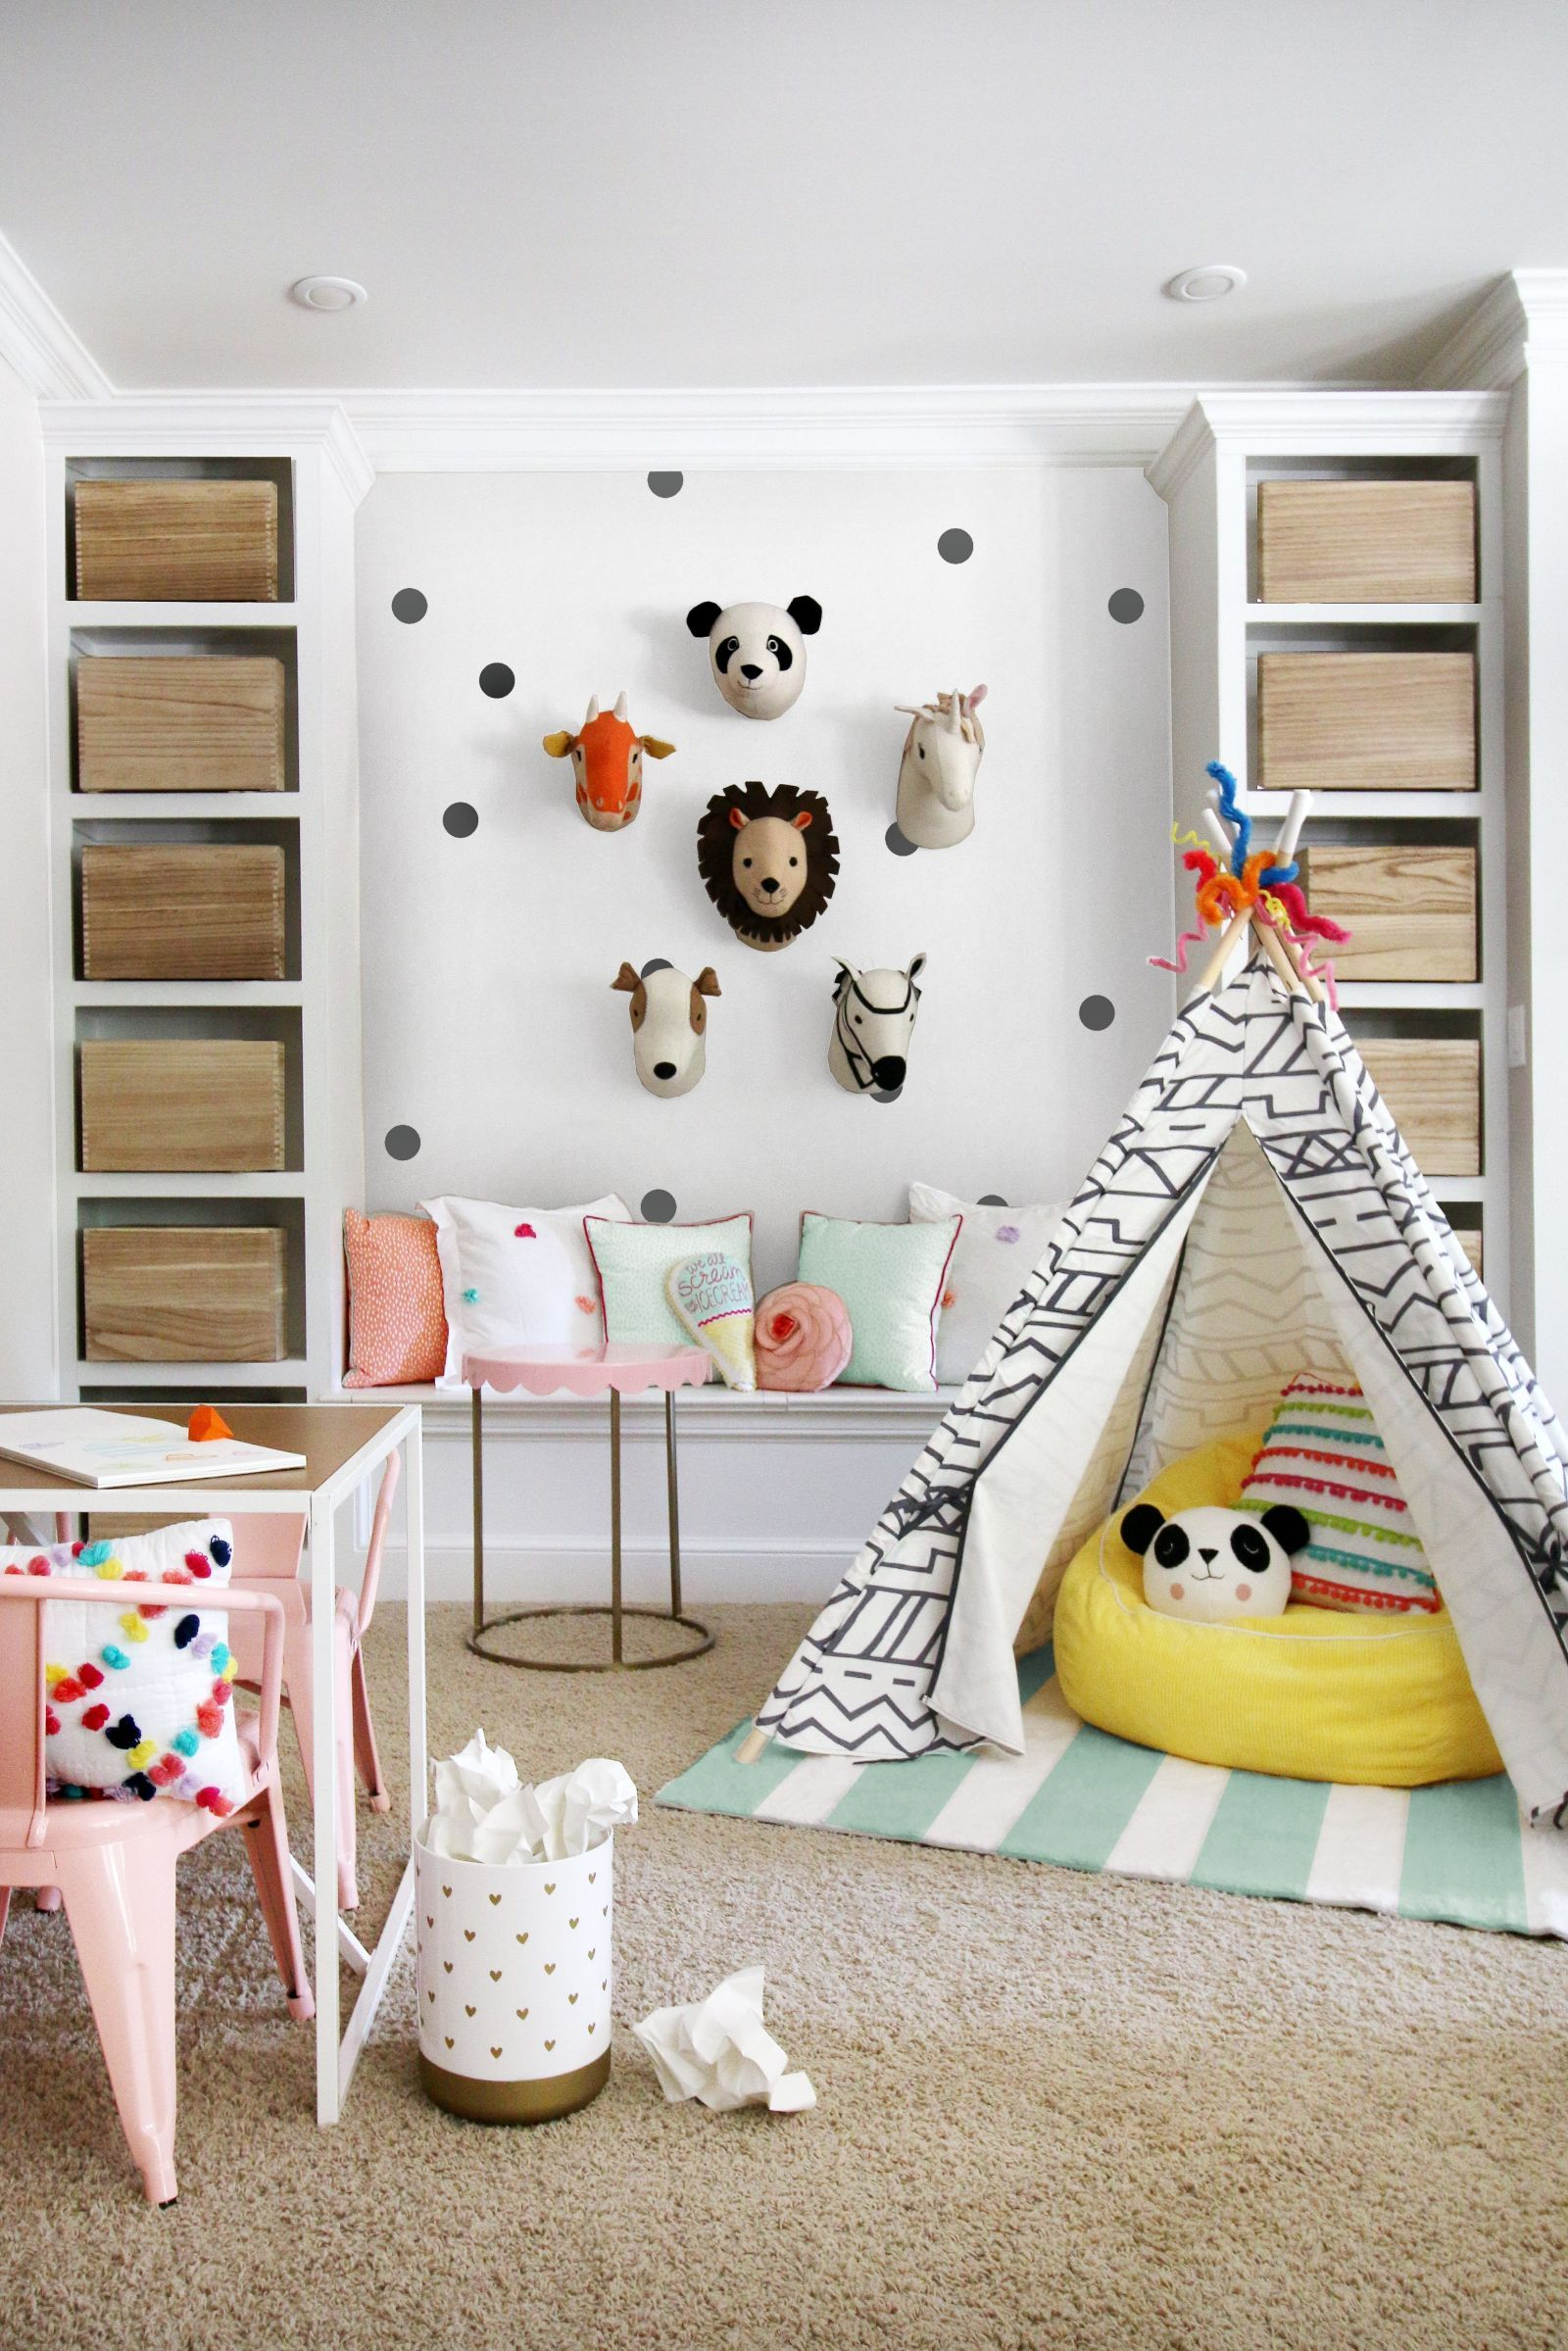 6 Totally Fresh Decorating Ideas For The Kids' Playroom | Decoraciã³n